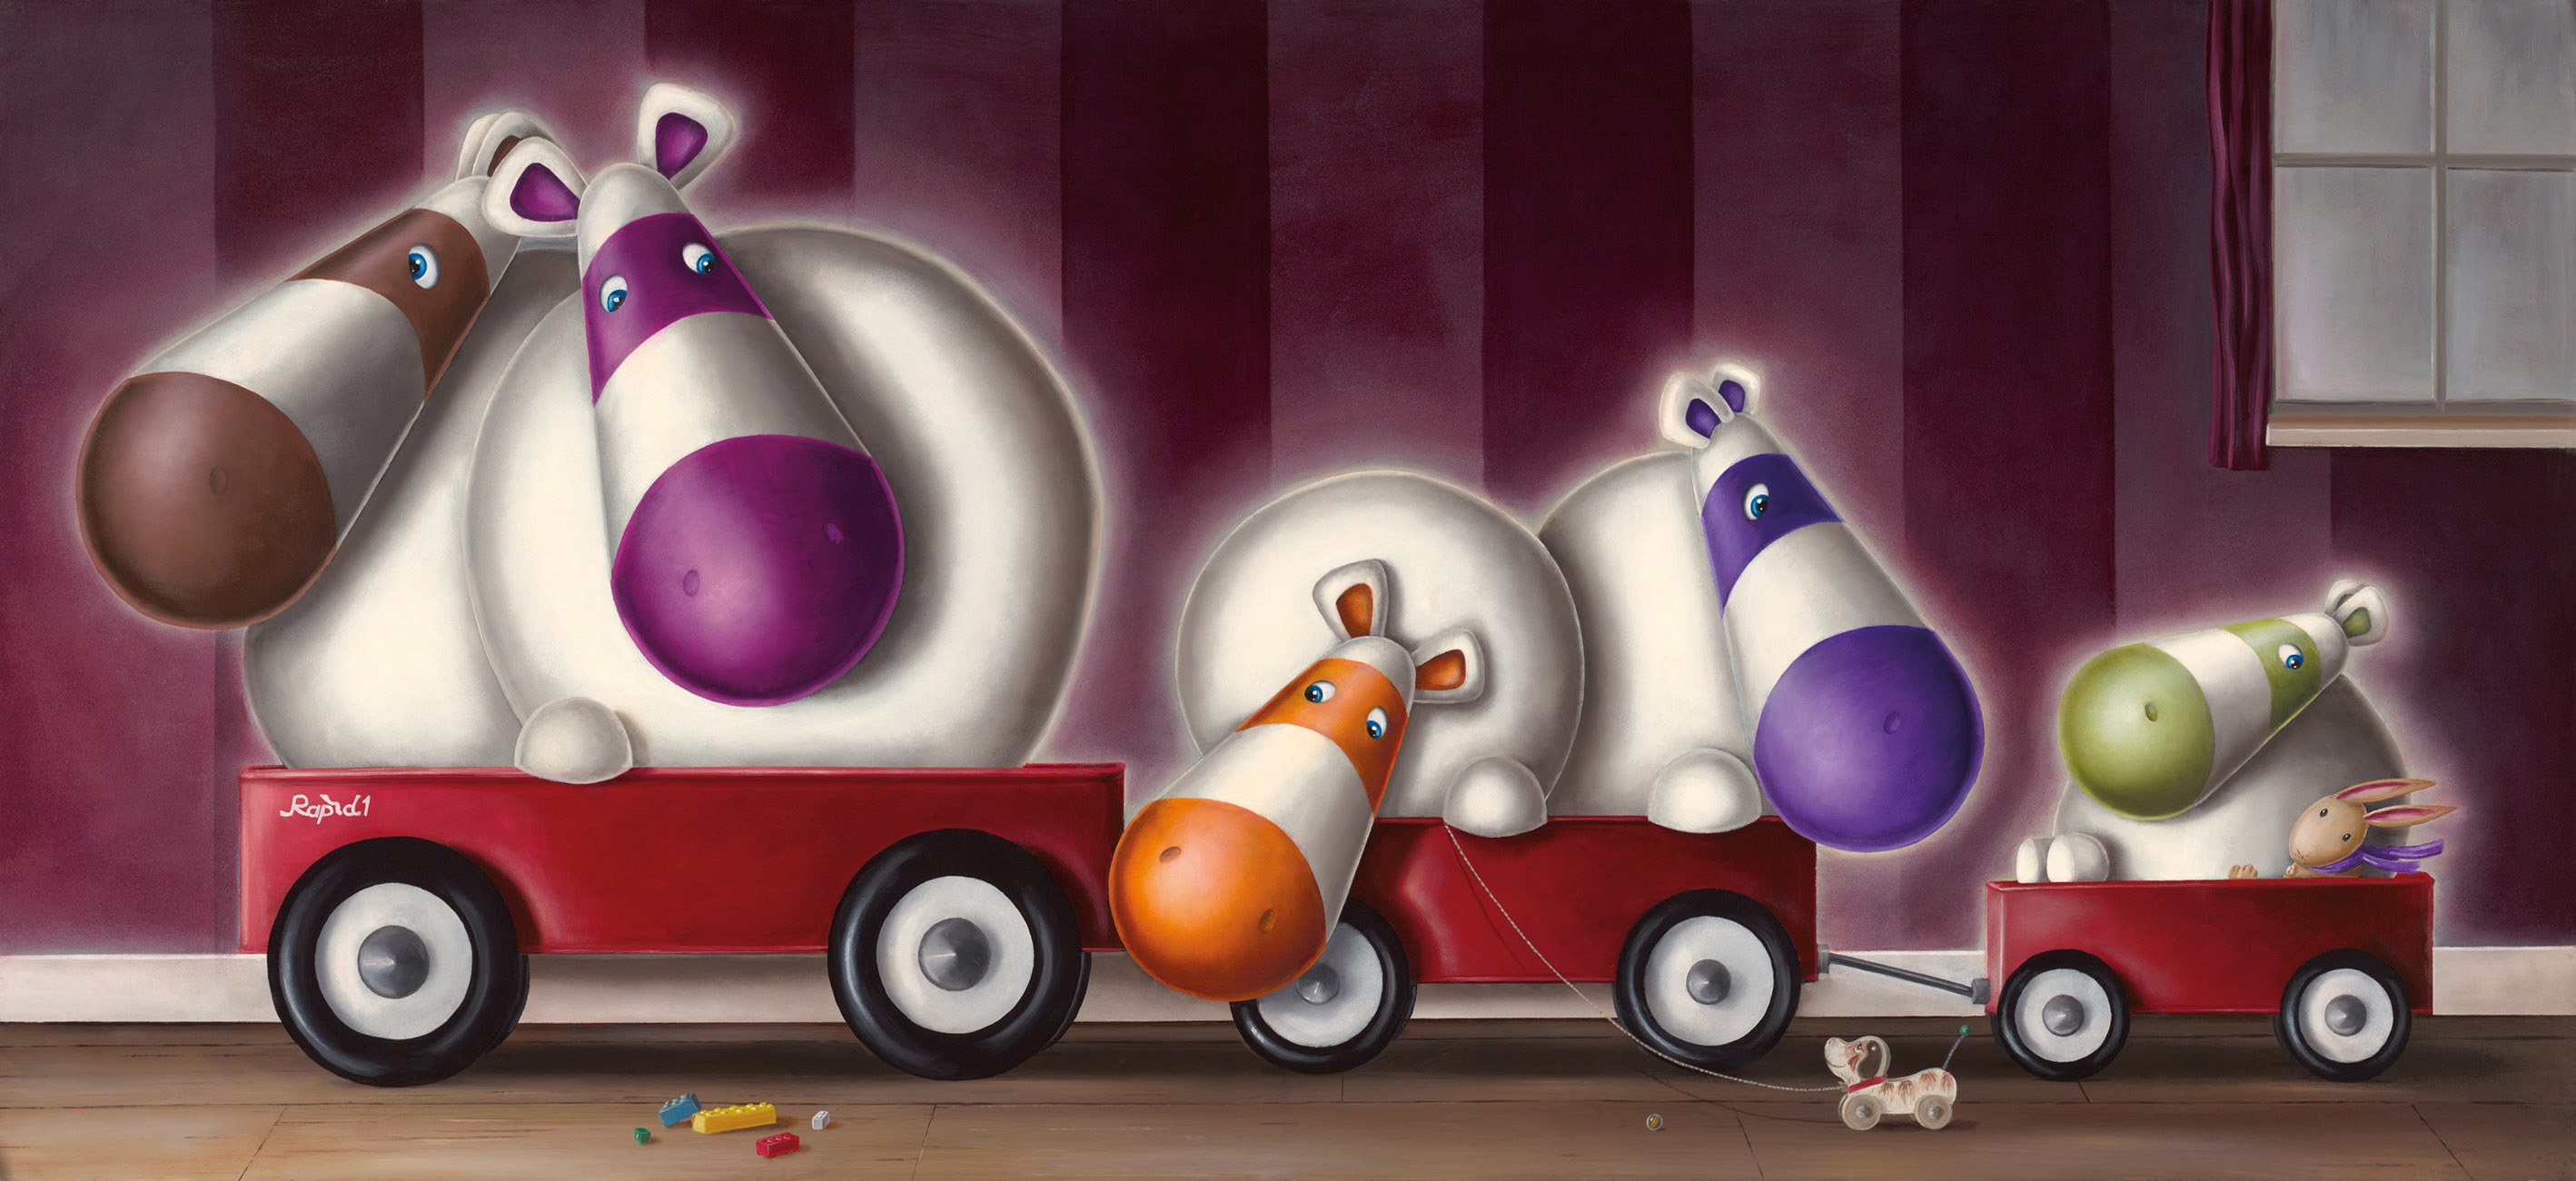 This Is How We Roll by Peter Smith